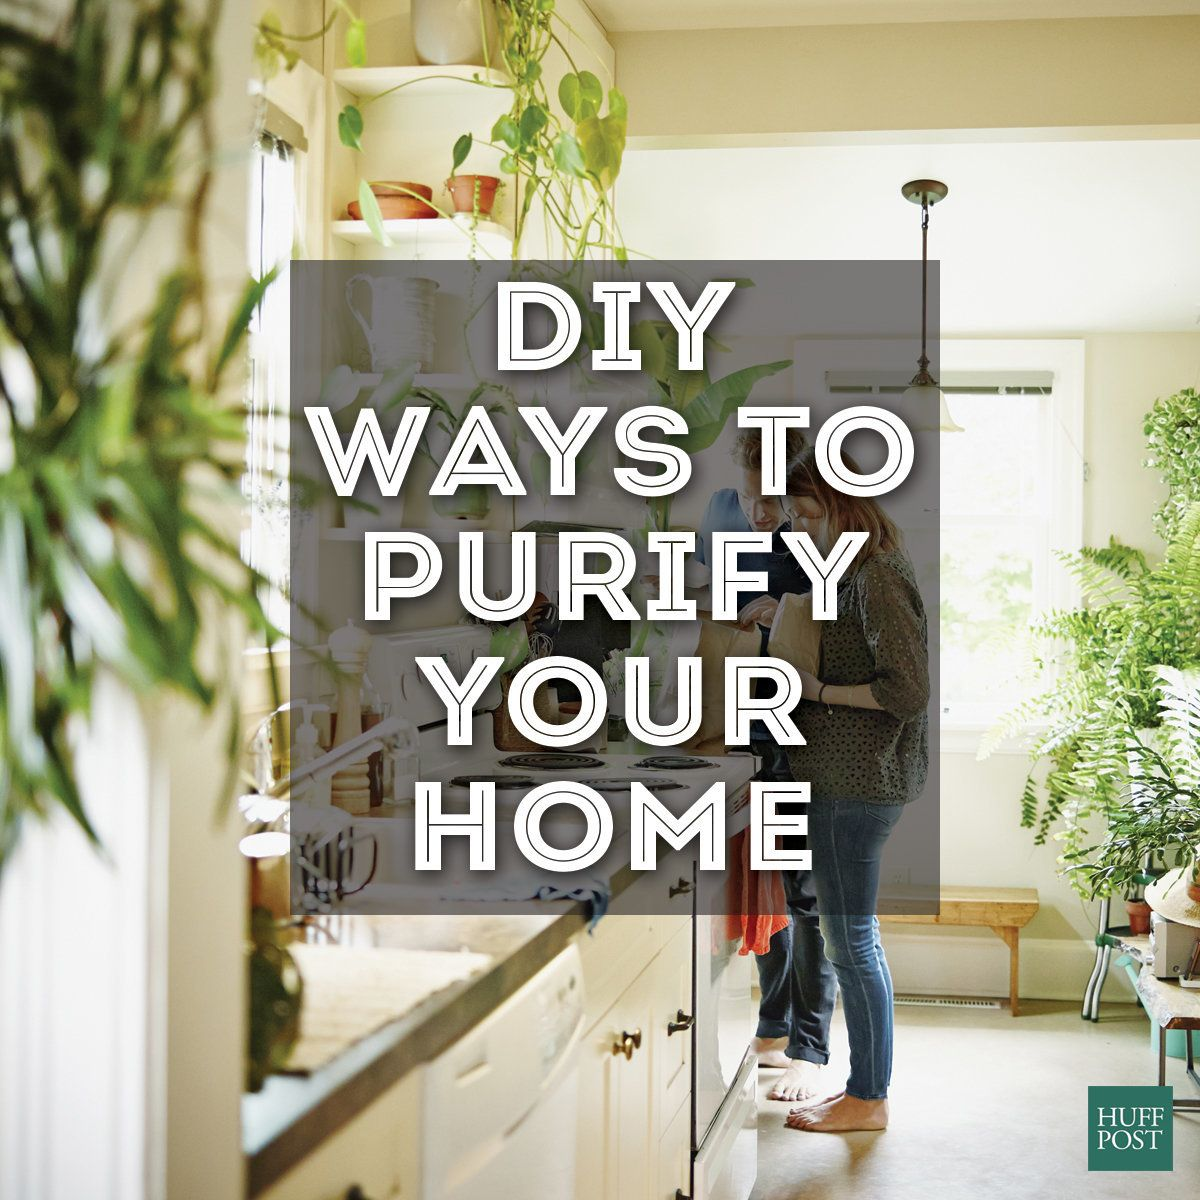 Lovely How To Purify Your Home Without A Pricey Air Purification System | HuffPost